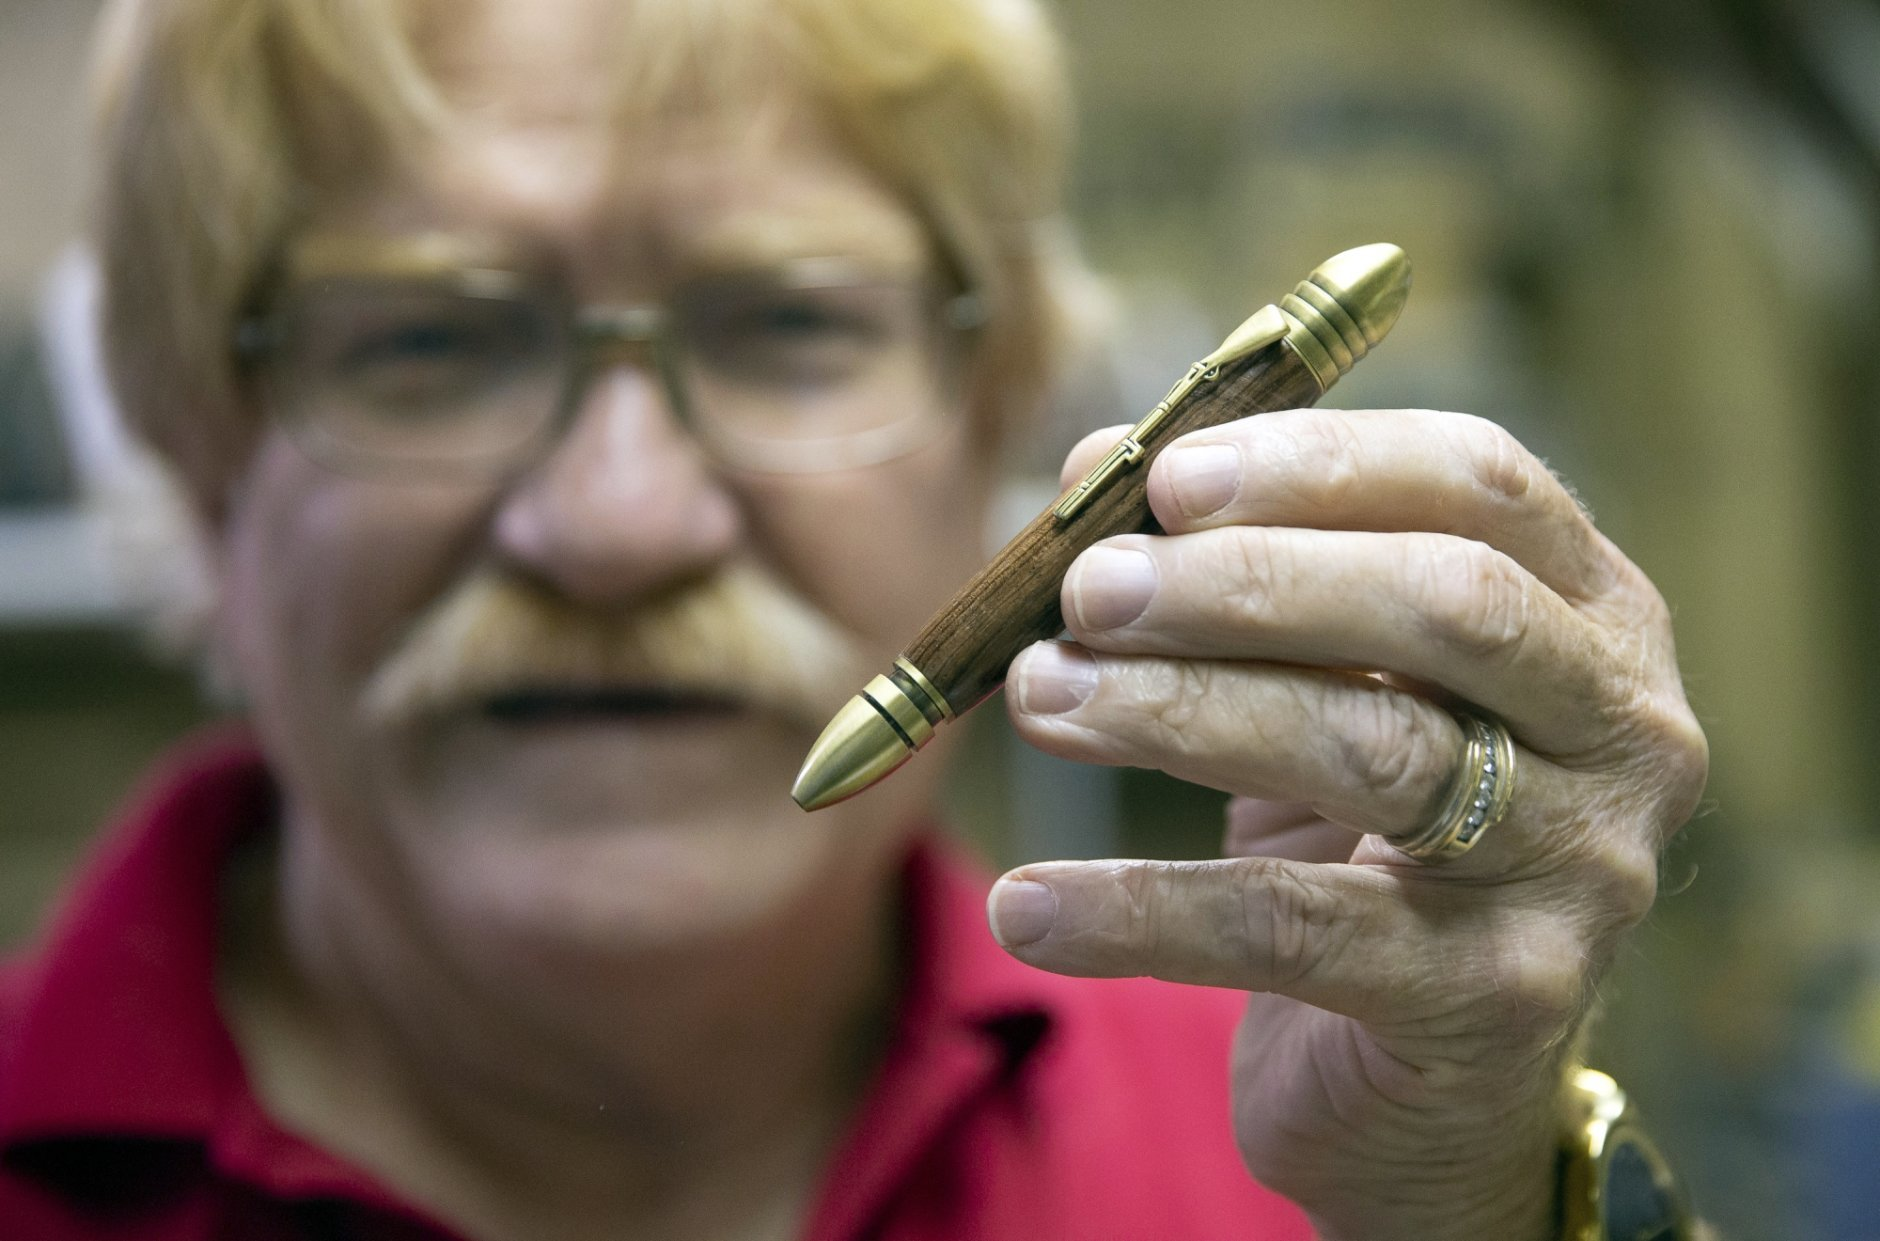 Ed Seyfried, owner of Ed's Pens, holds a Civil War pen he made at his home in King George, Va. on Sept. 20, 2018. Seyfried uses materials including wood, acrylic, metal, horn and bone to make the pens. (Mike Morones/The Free Lance-Star via AP)